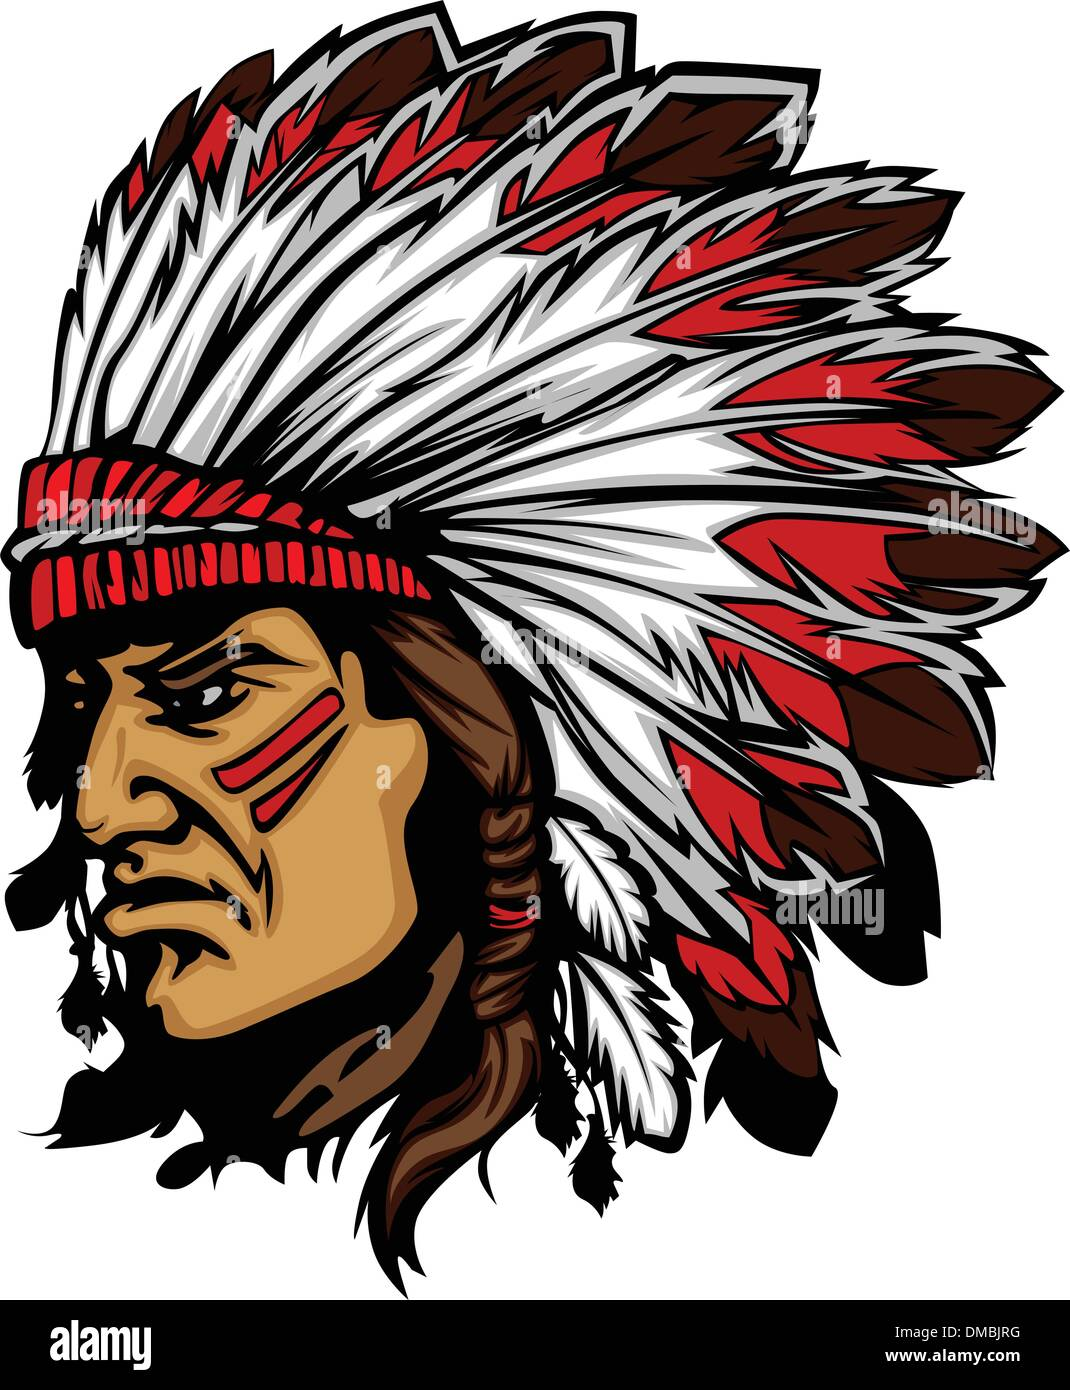 Indian Chief Mascot Head Vector Graphic - Stock Image